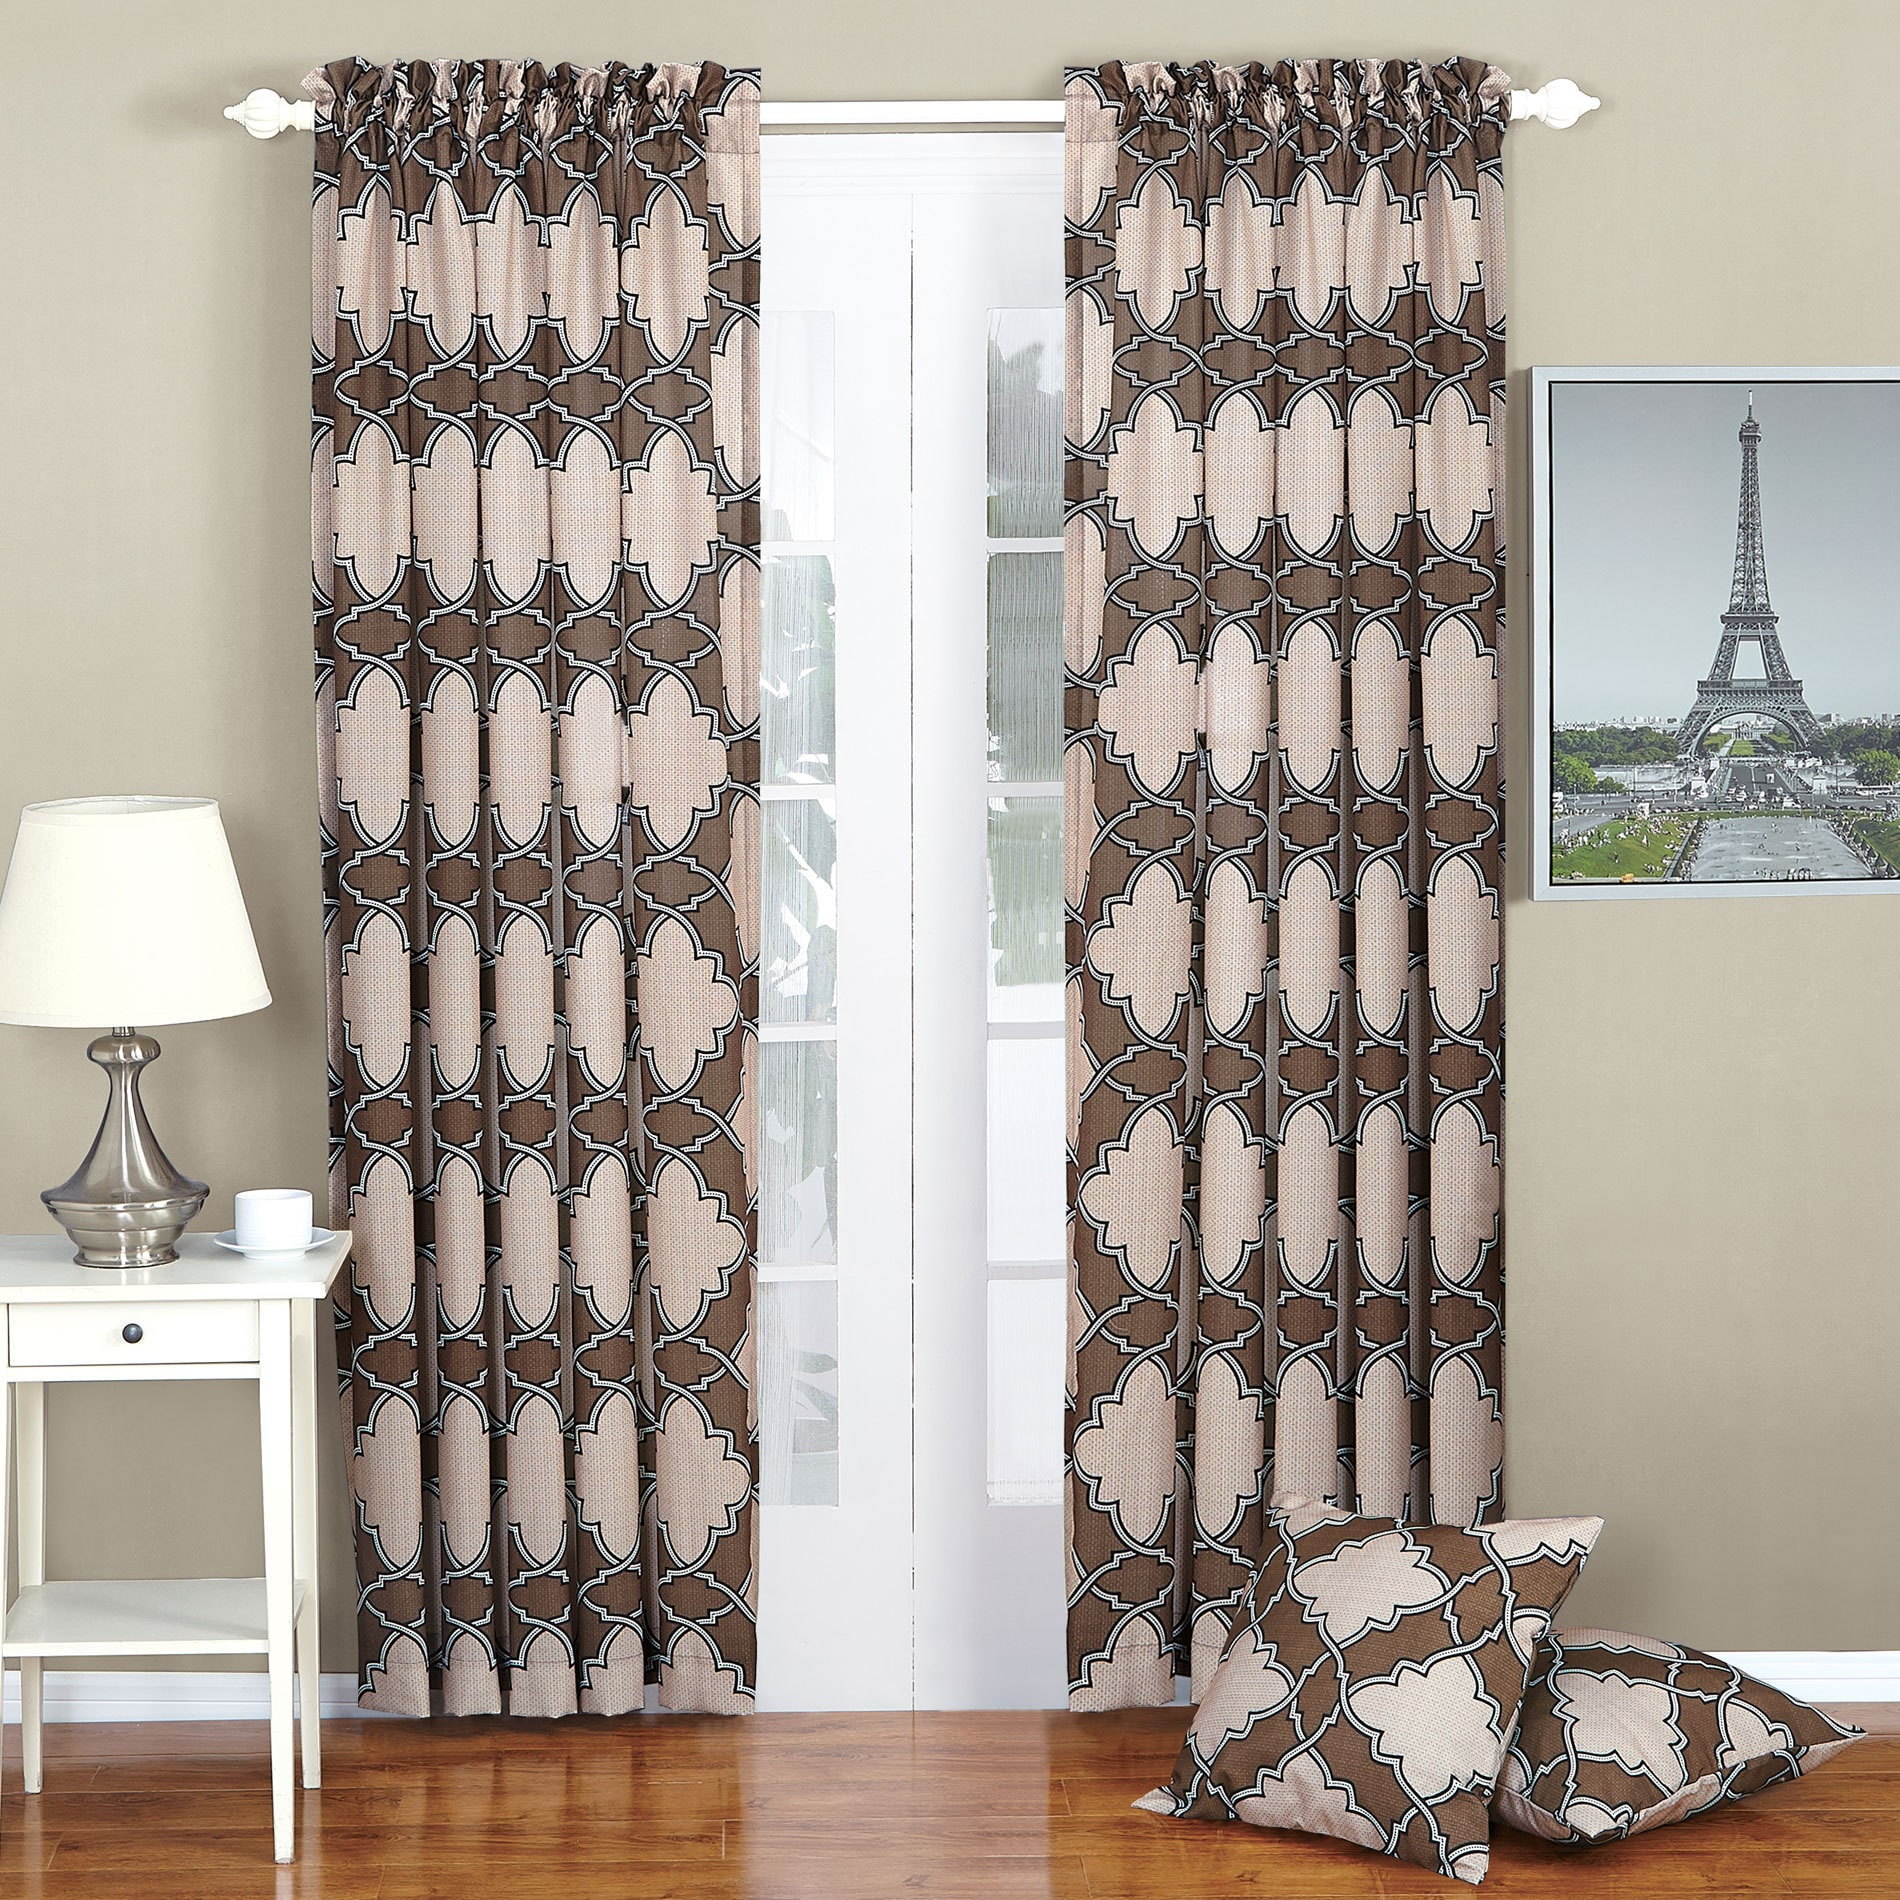 fea elements curtains supported rod software curtain simply flexible beam a shell